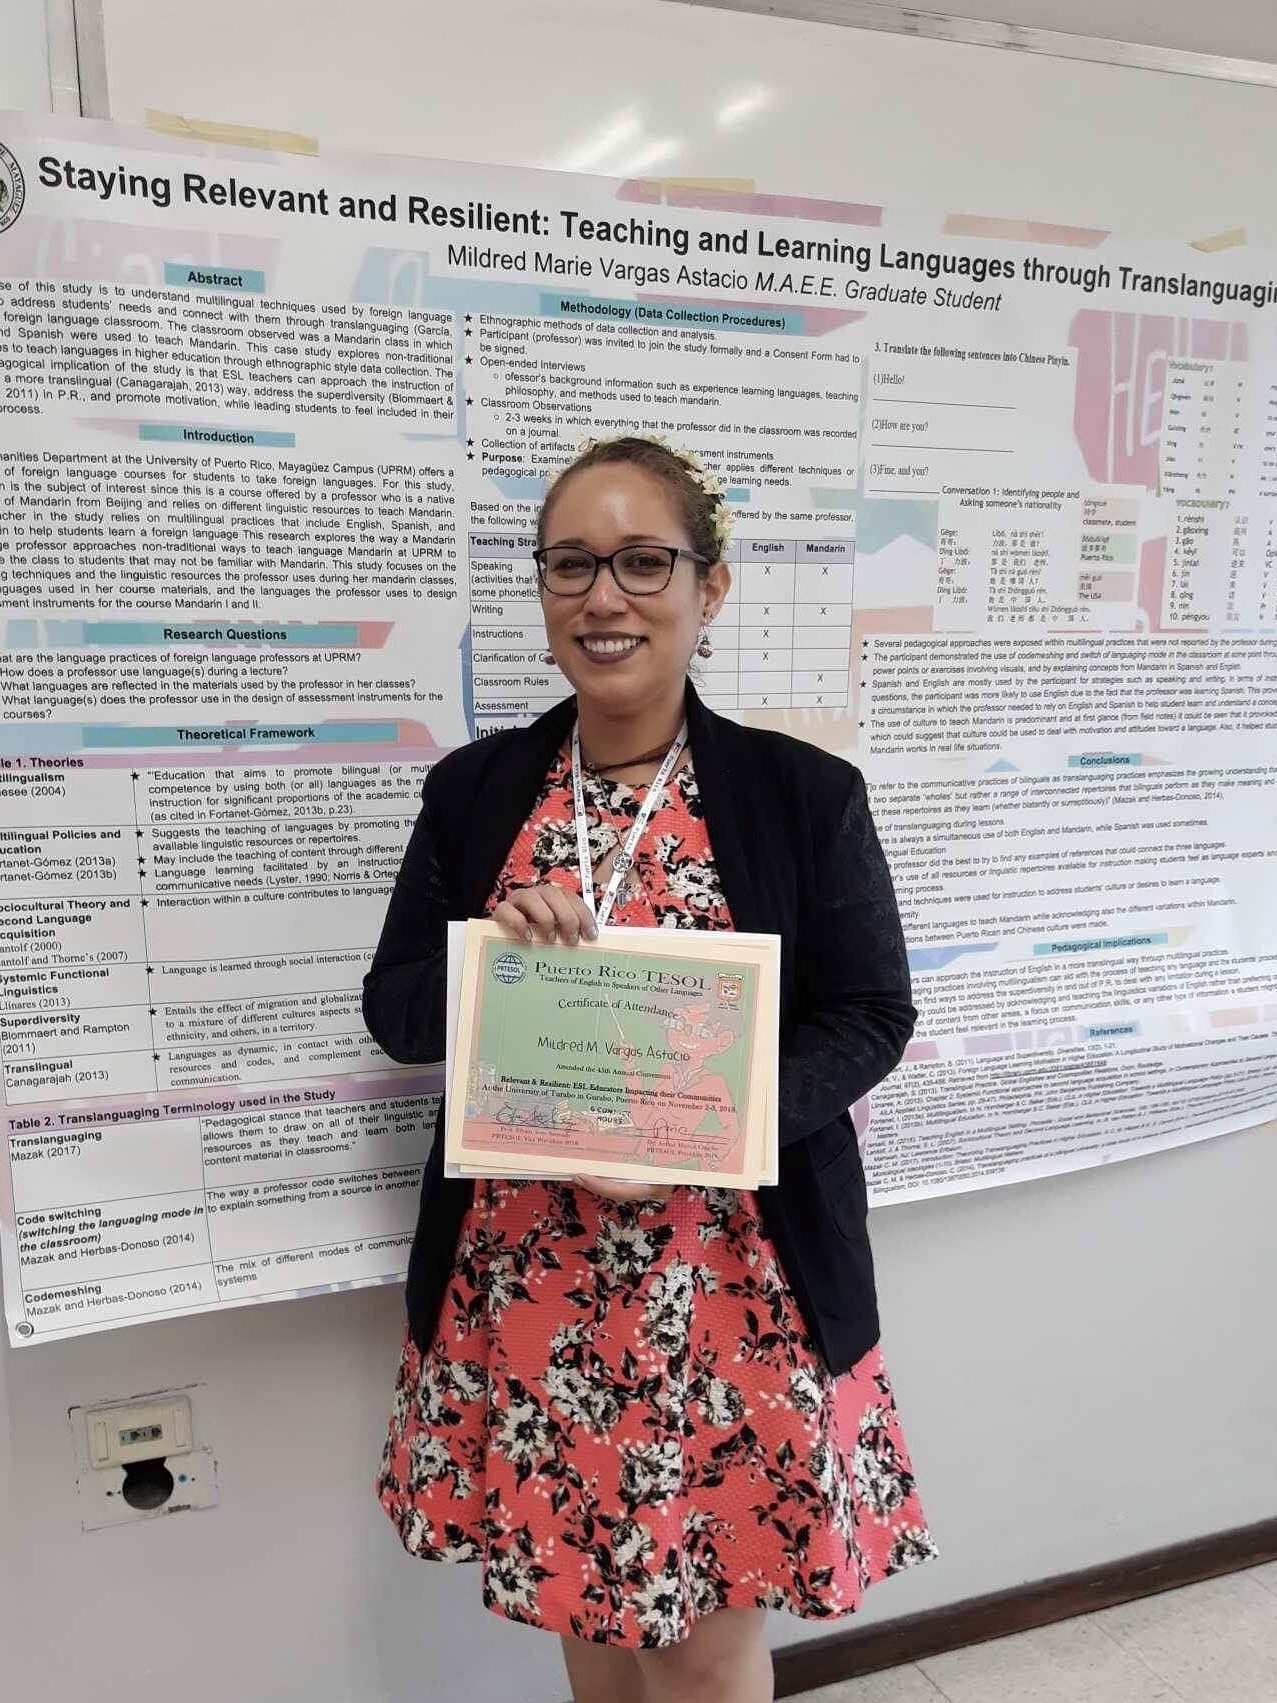 An English Department's student with a Puerto Rico TESOL Certificate.